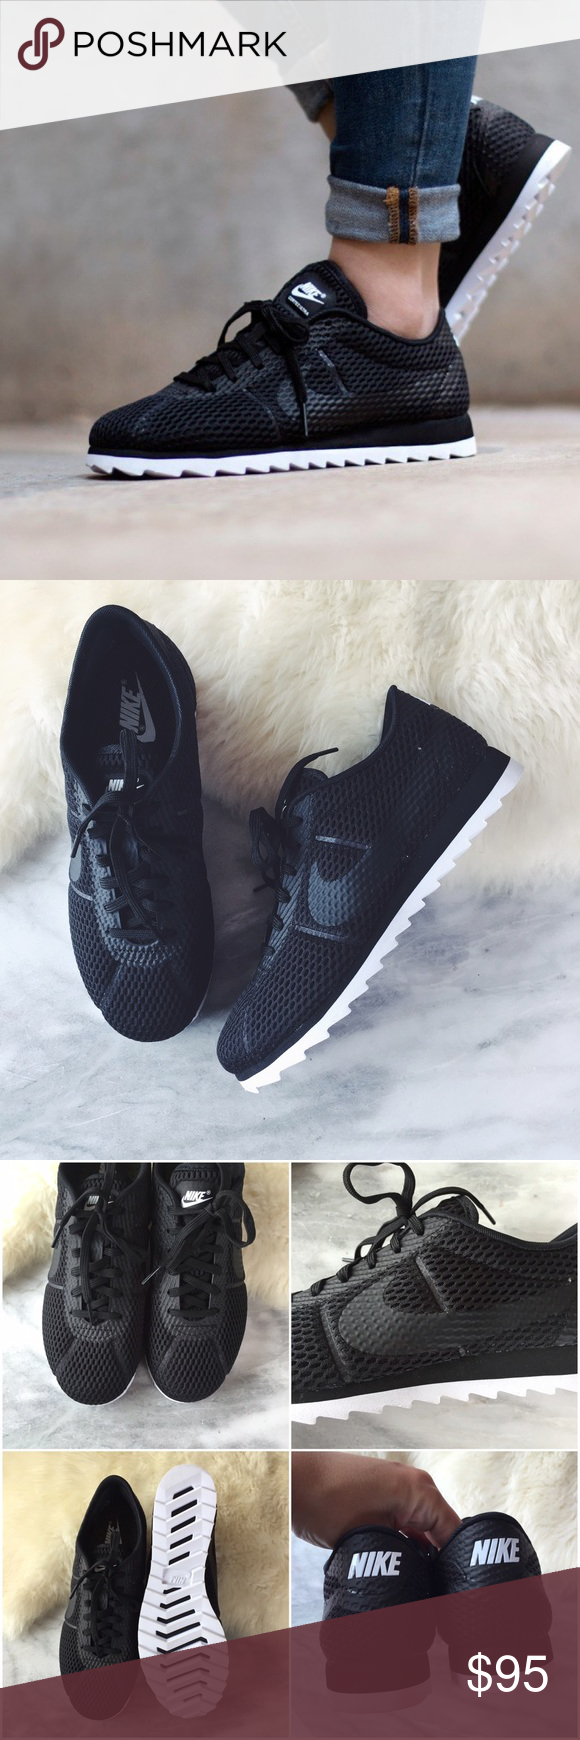 cf23807a17c Nike Cortez Ultra BR Sneakers •Engineered to keep you cool